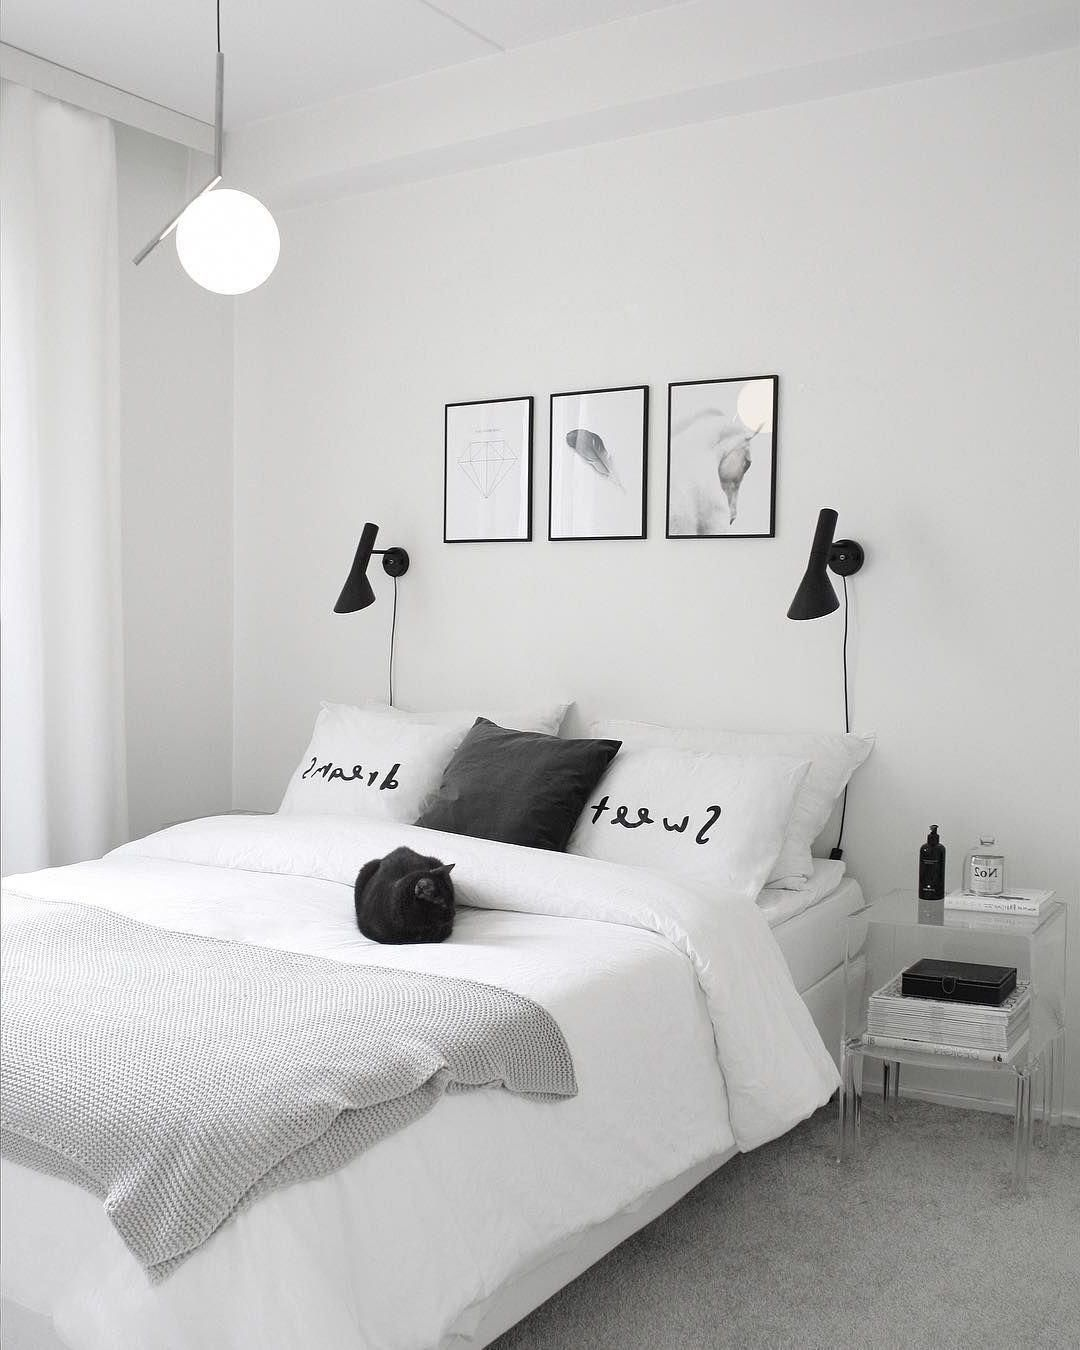 How To Transform Your Bedroom Into Black And White Color Scheme In 2020 White Bedroom Design Bedroom Color Schemes Neutral Bedroom Design